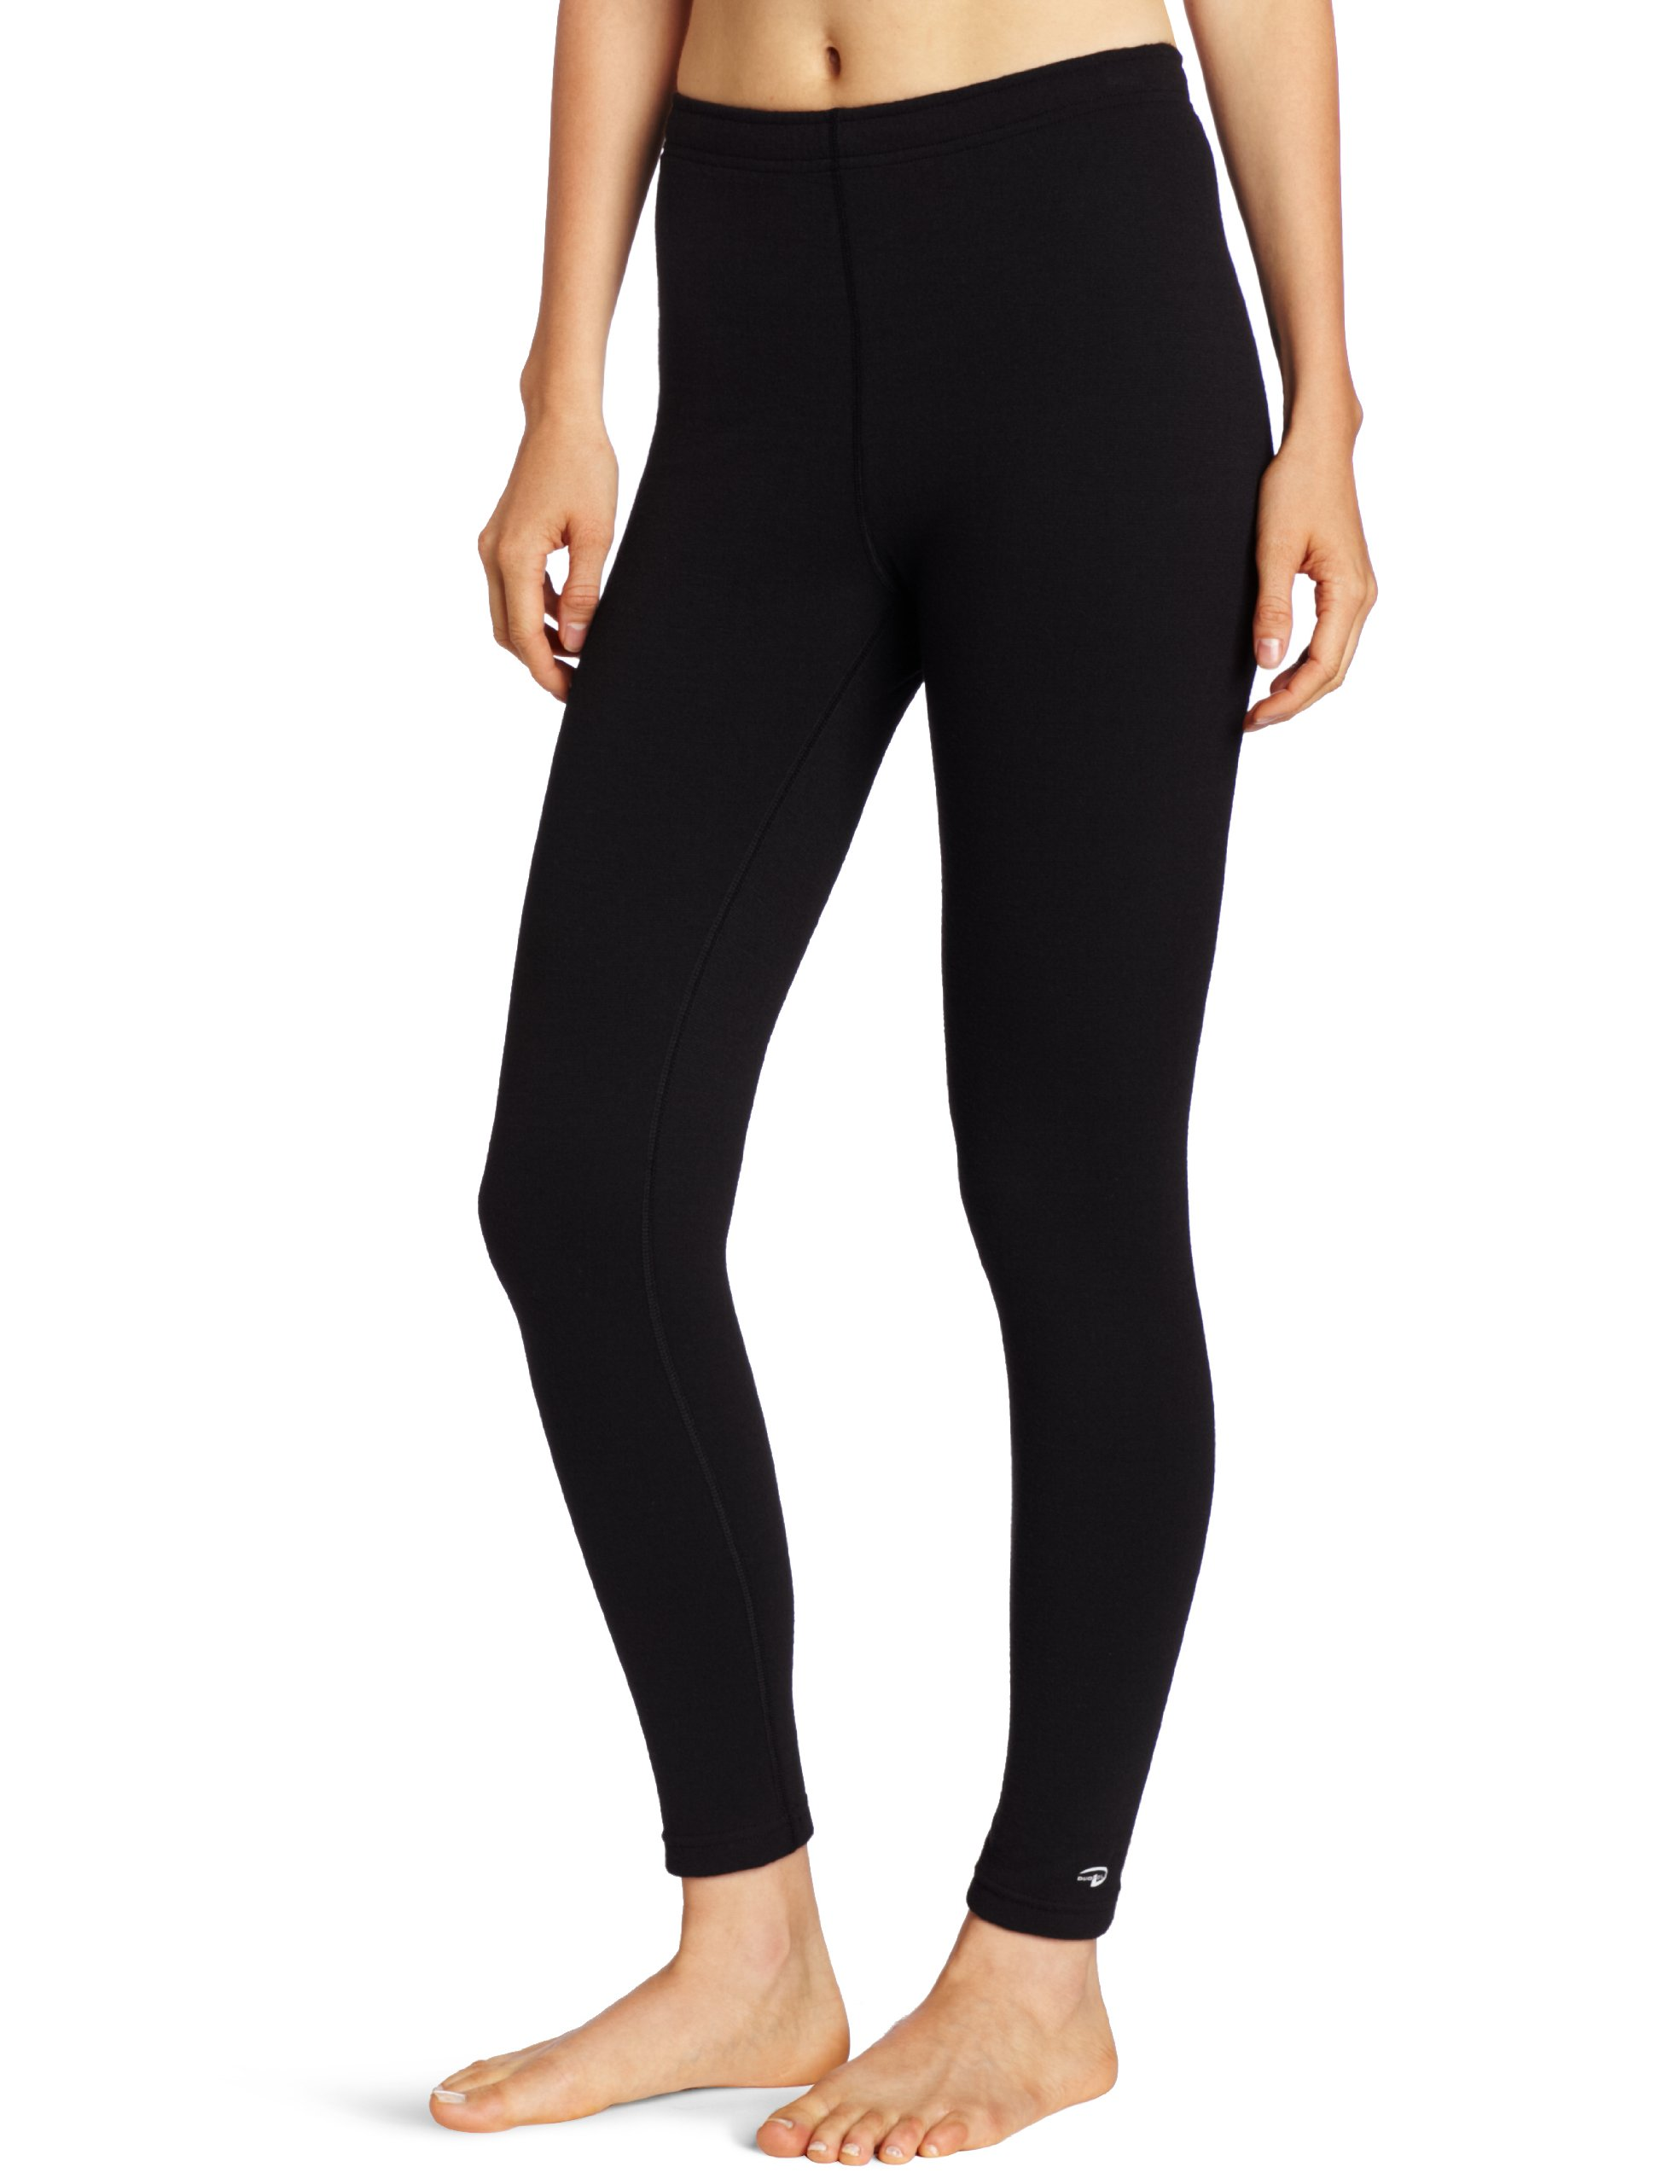 Duofold Women's Heavy Weight Double Layer Thermal Leggings, Black, Small by Duofold